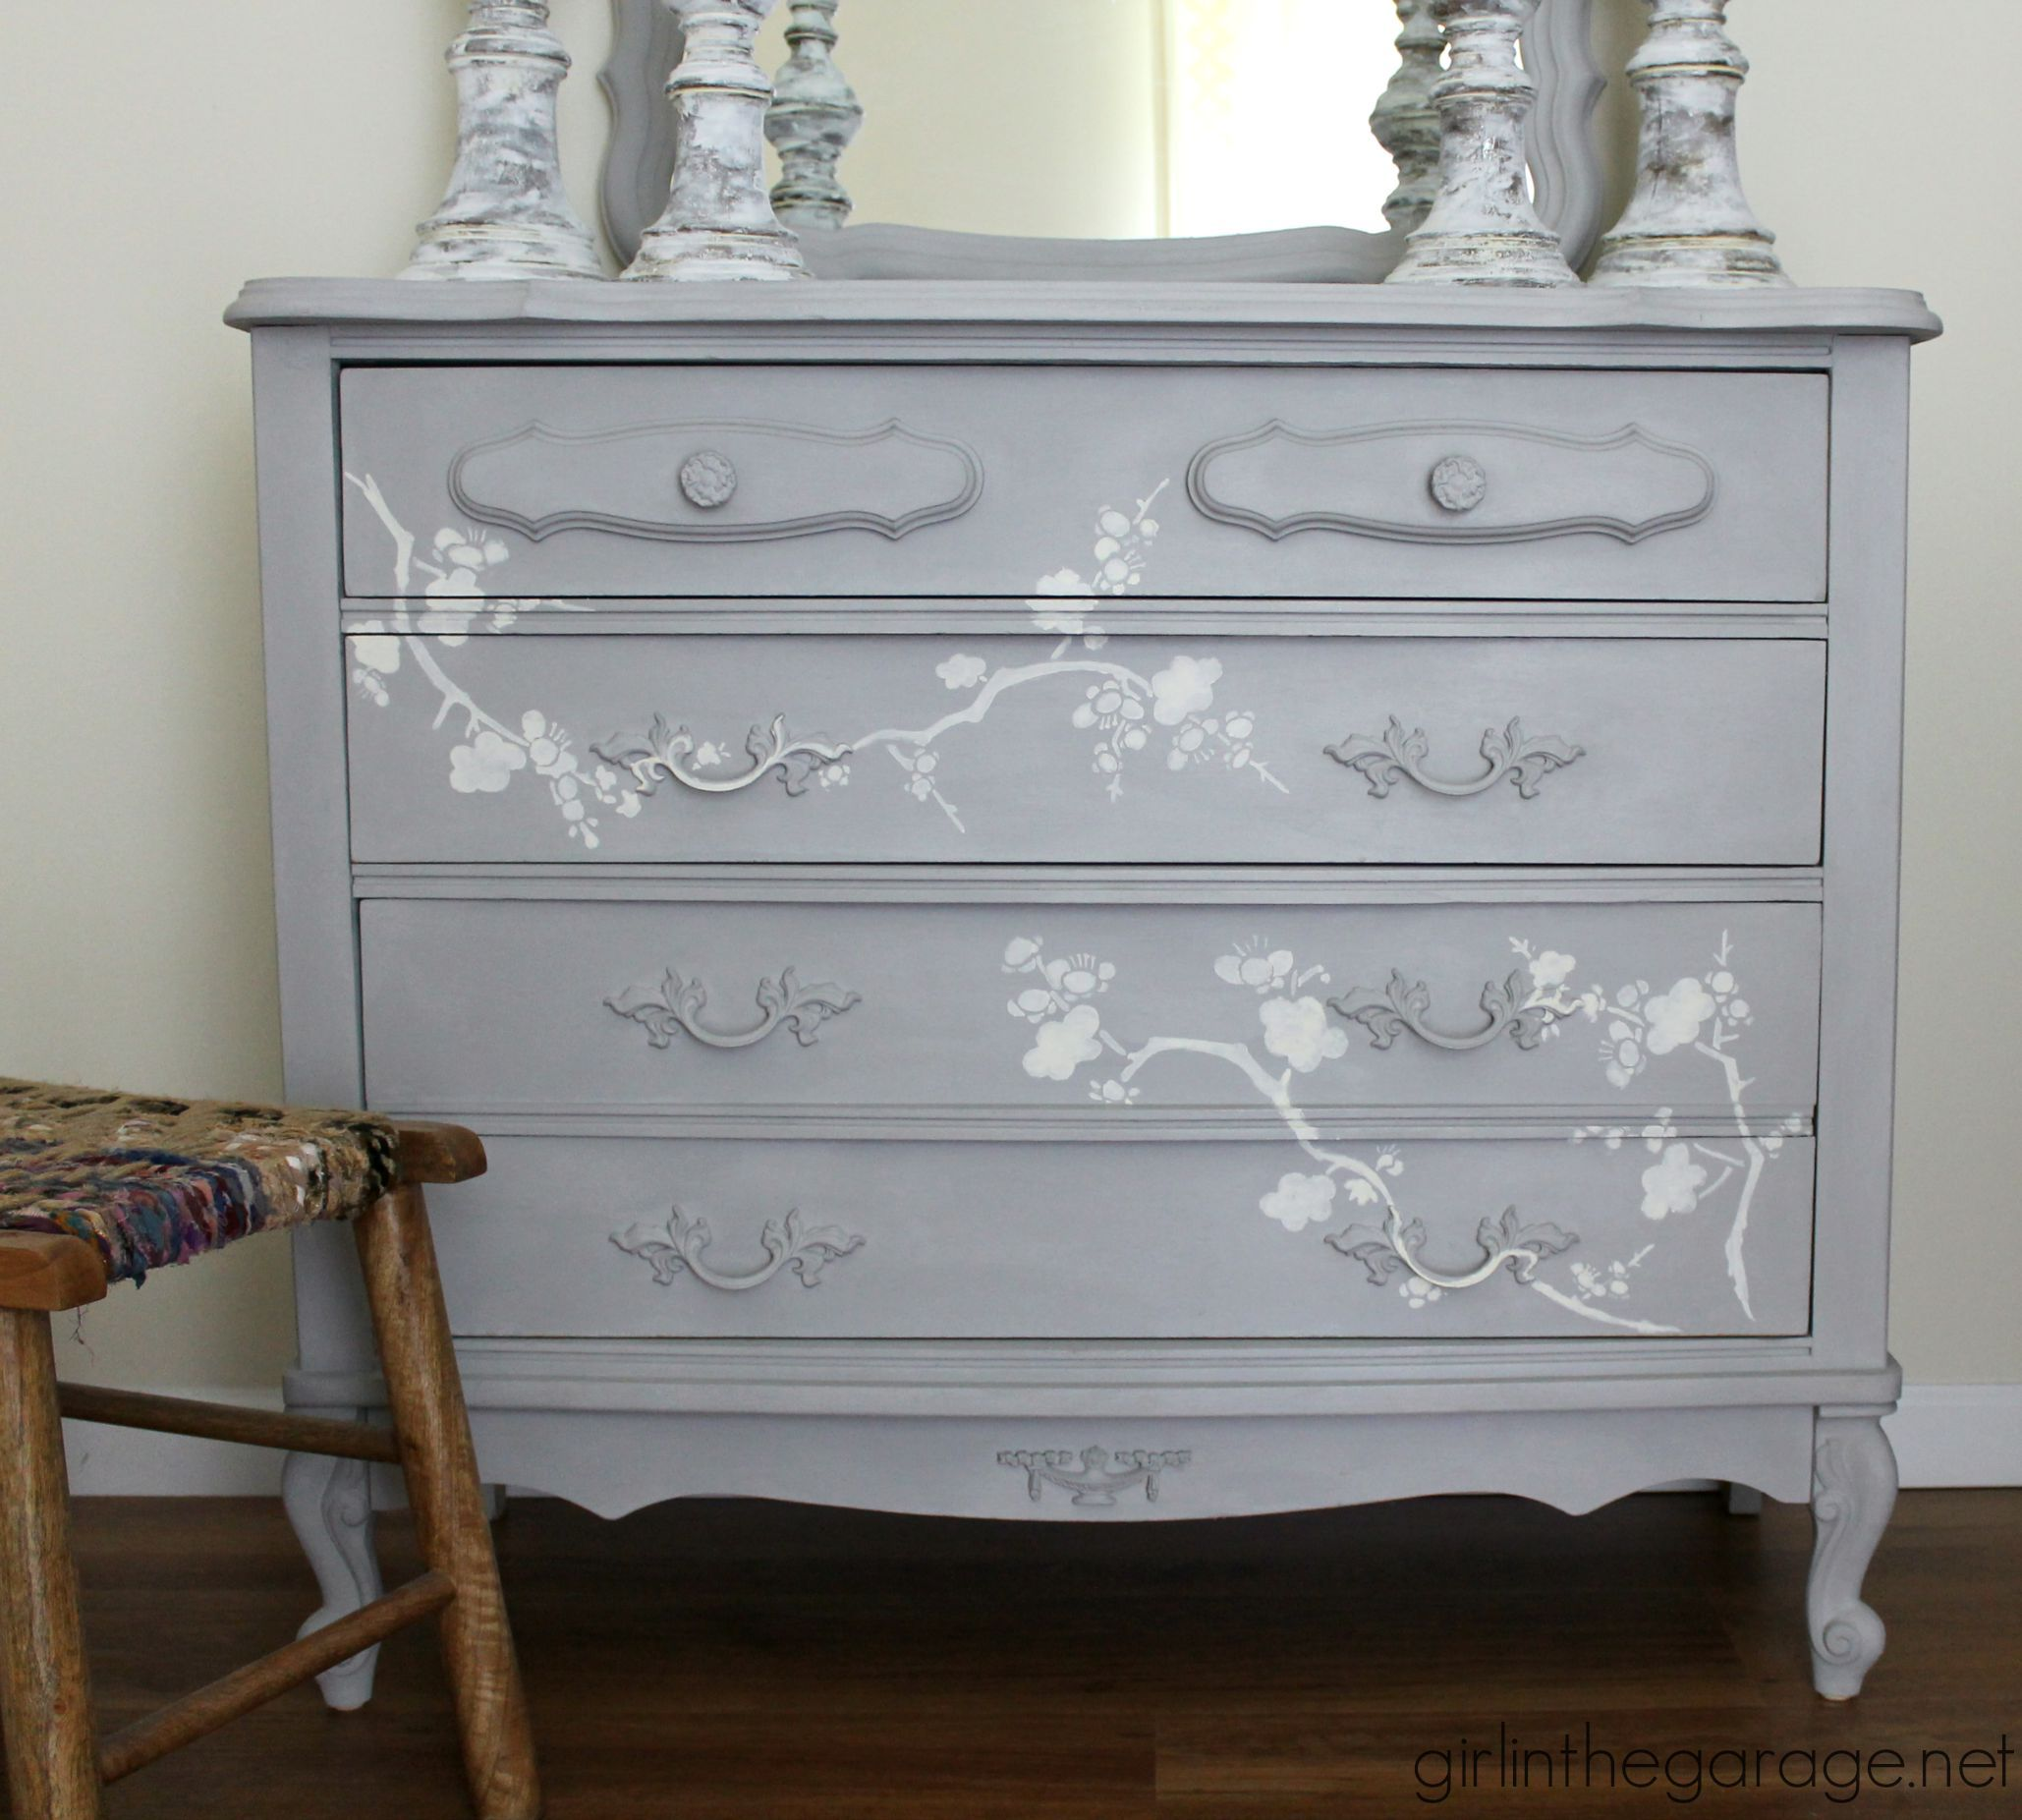 Chalk Paint and Cherry Blossoms - A Dresser Makeov